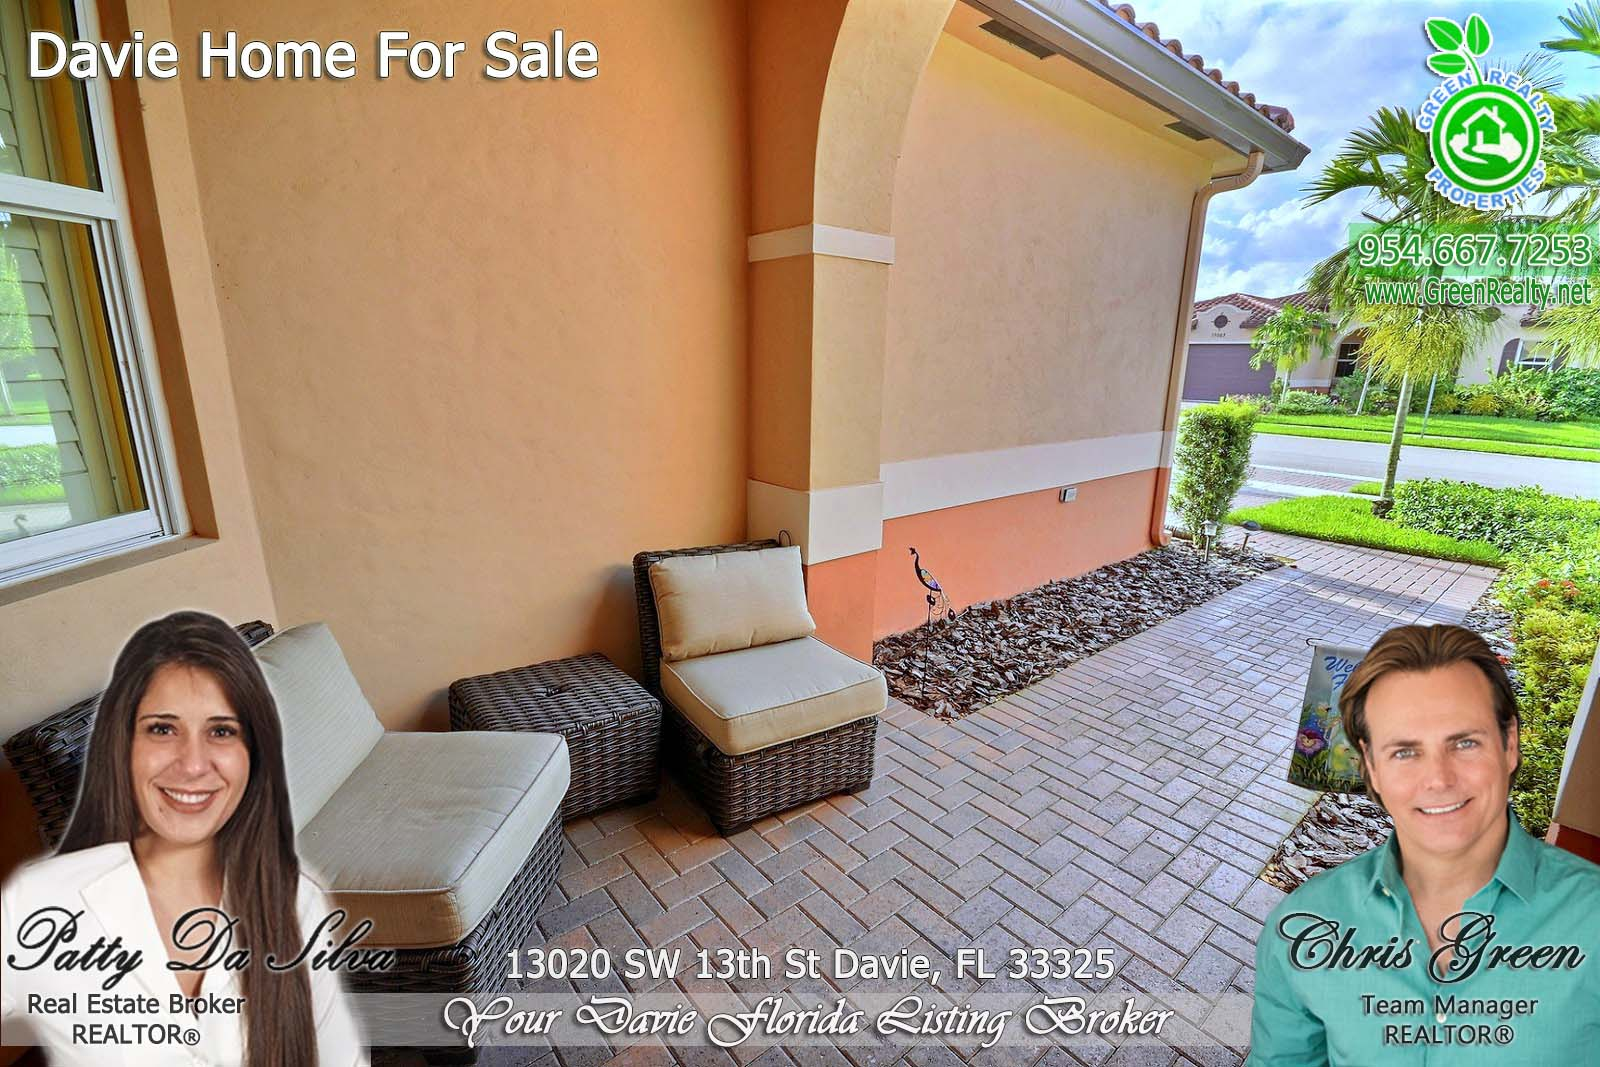 22 Homes For Sale in Davie Florida (4)